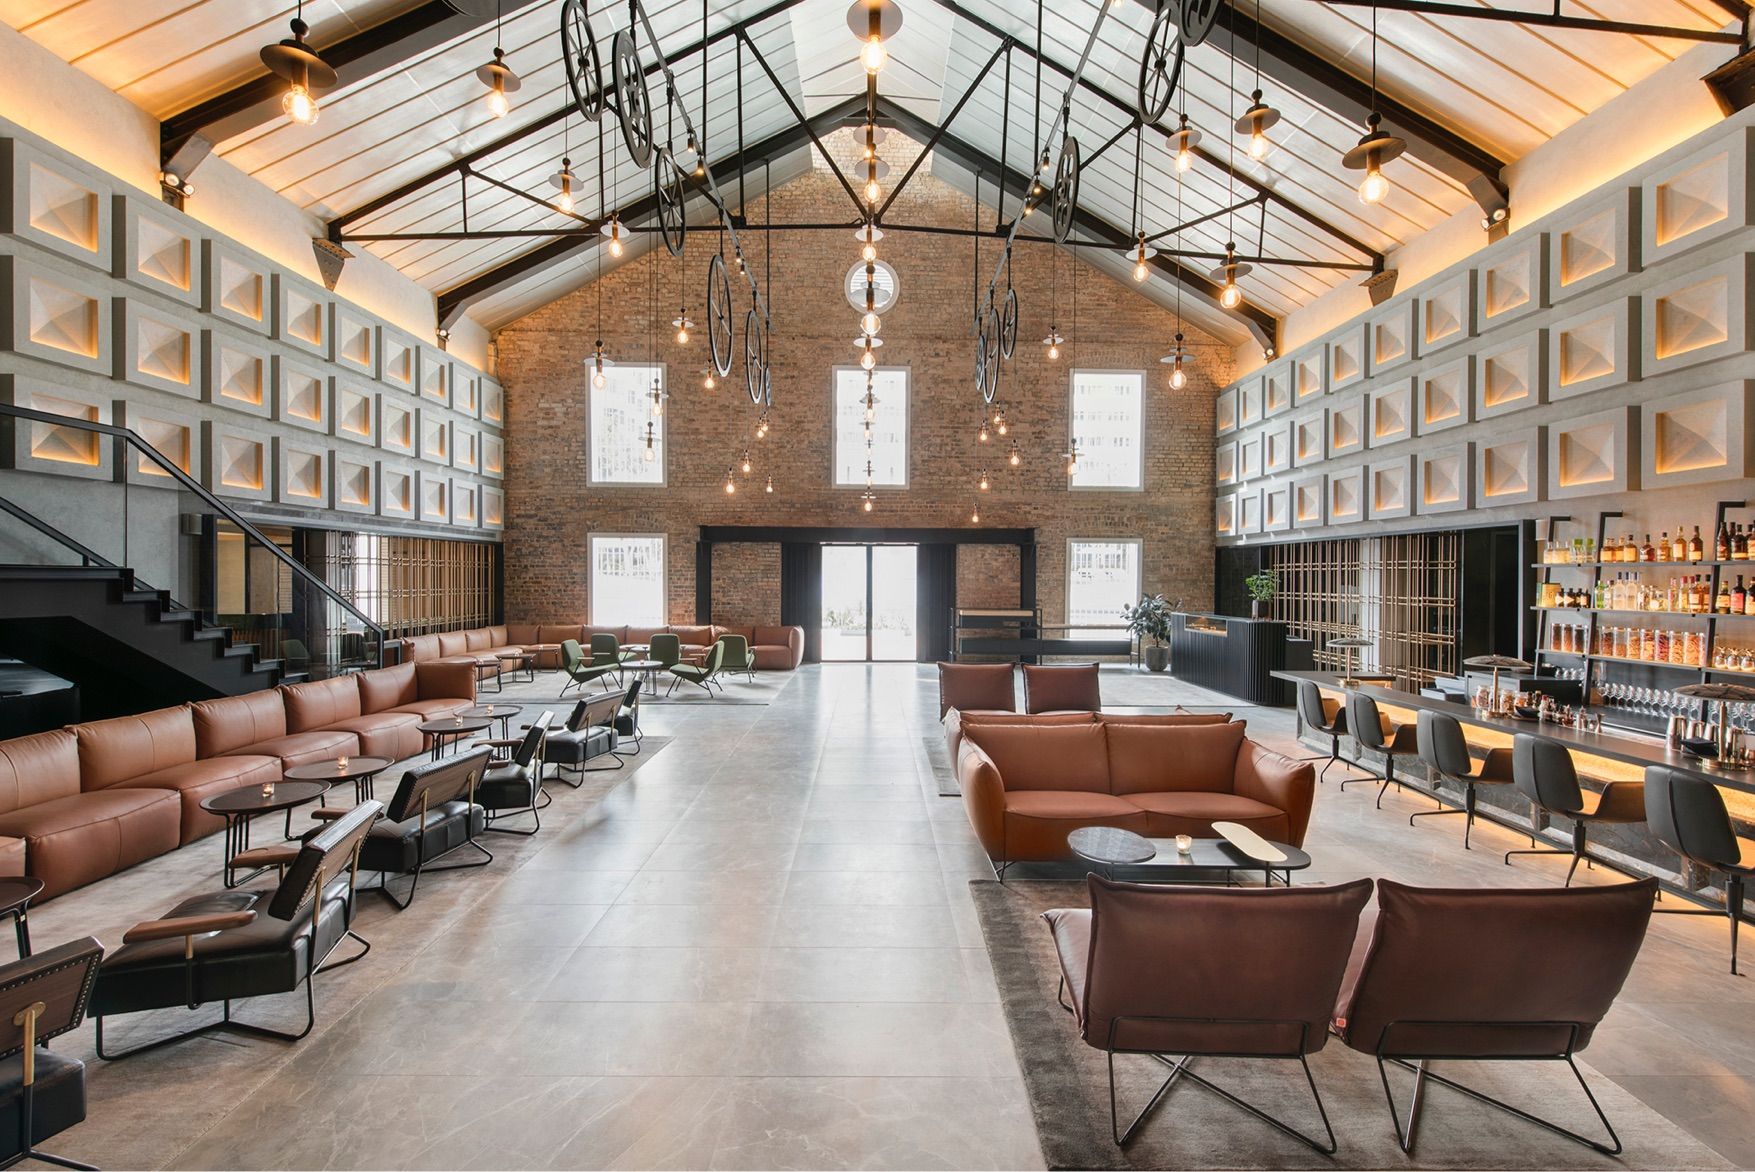 squarerooms-hotel-singapore-style-the-warehouse-hotel-industrial-chic-lobby